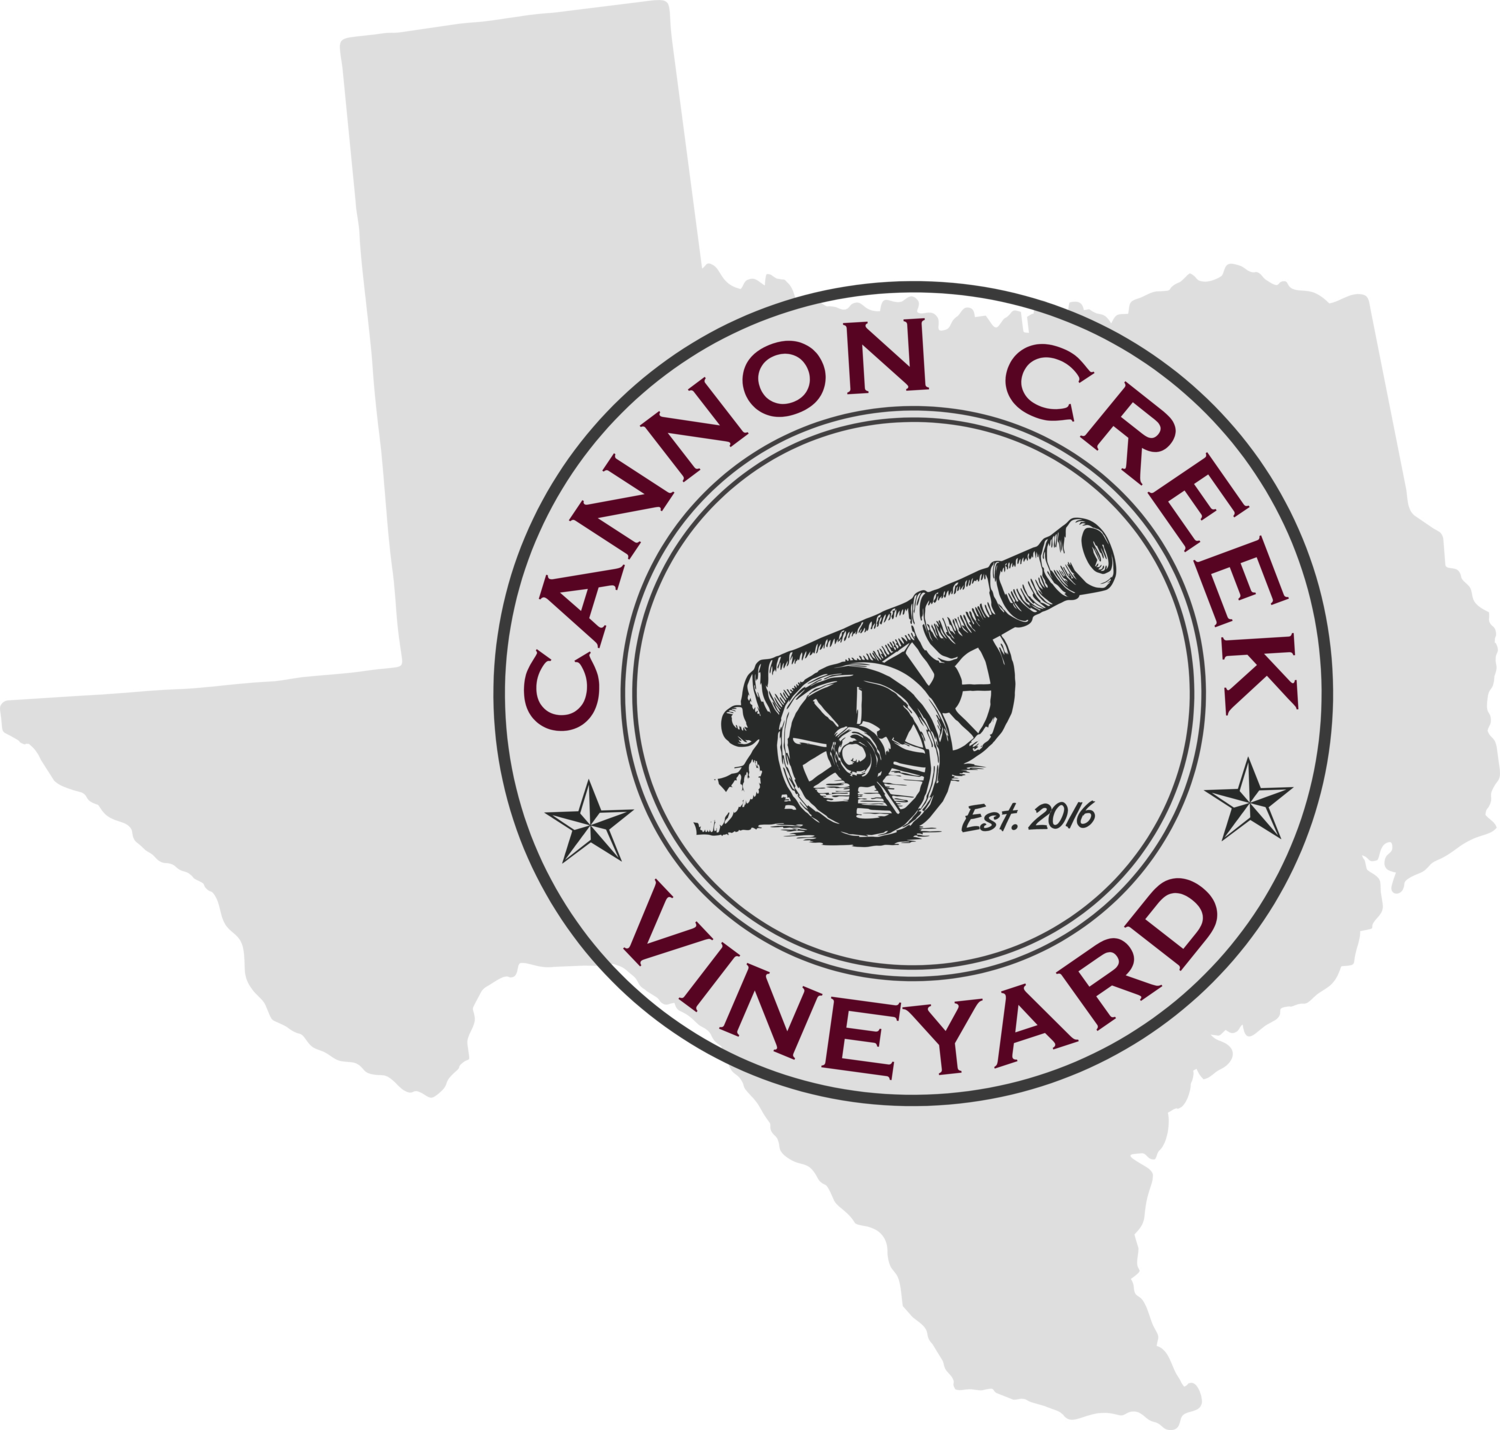 Cannon Creek Vineyard